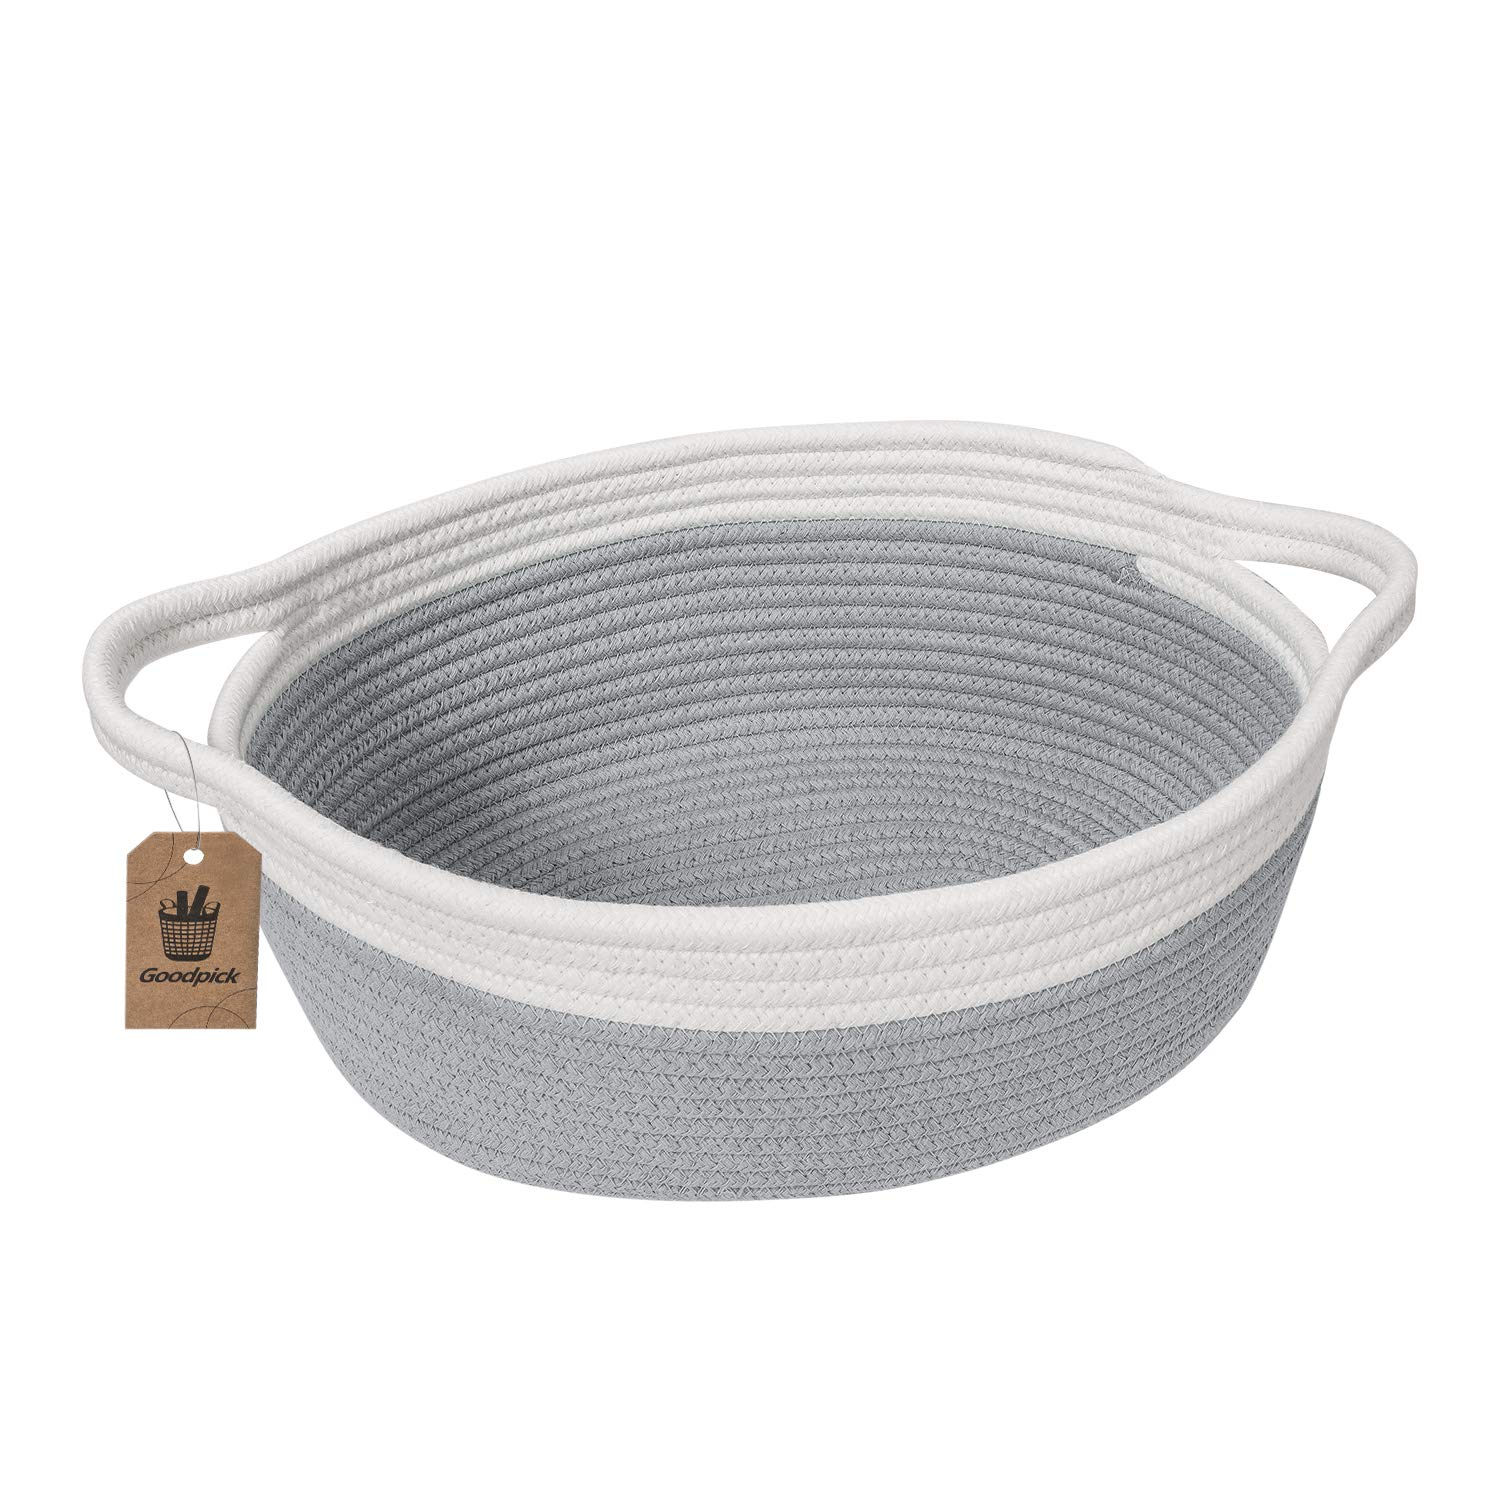 Goodpick Small Woven Basket   Cute Gray Rope Basket   Baby Cotton Basket   Nursery Room Storage Basket   Toy Chest Box with Handles Basket 12''x 8'' x 5'' Oval Candy Color Design by Goodpick